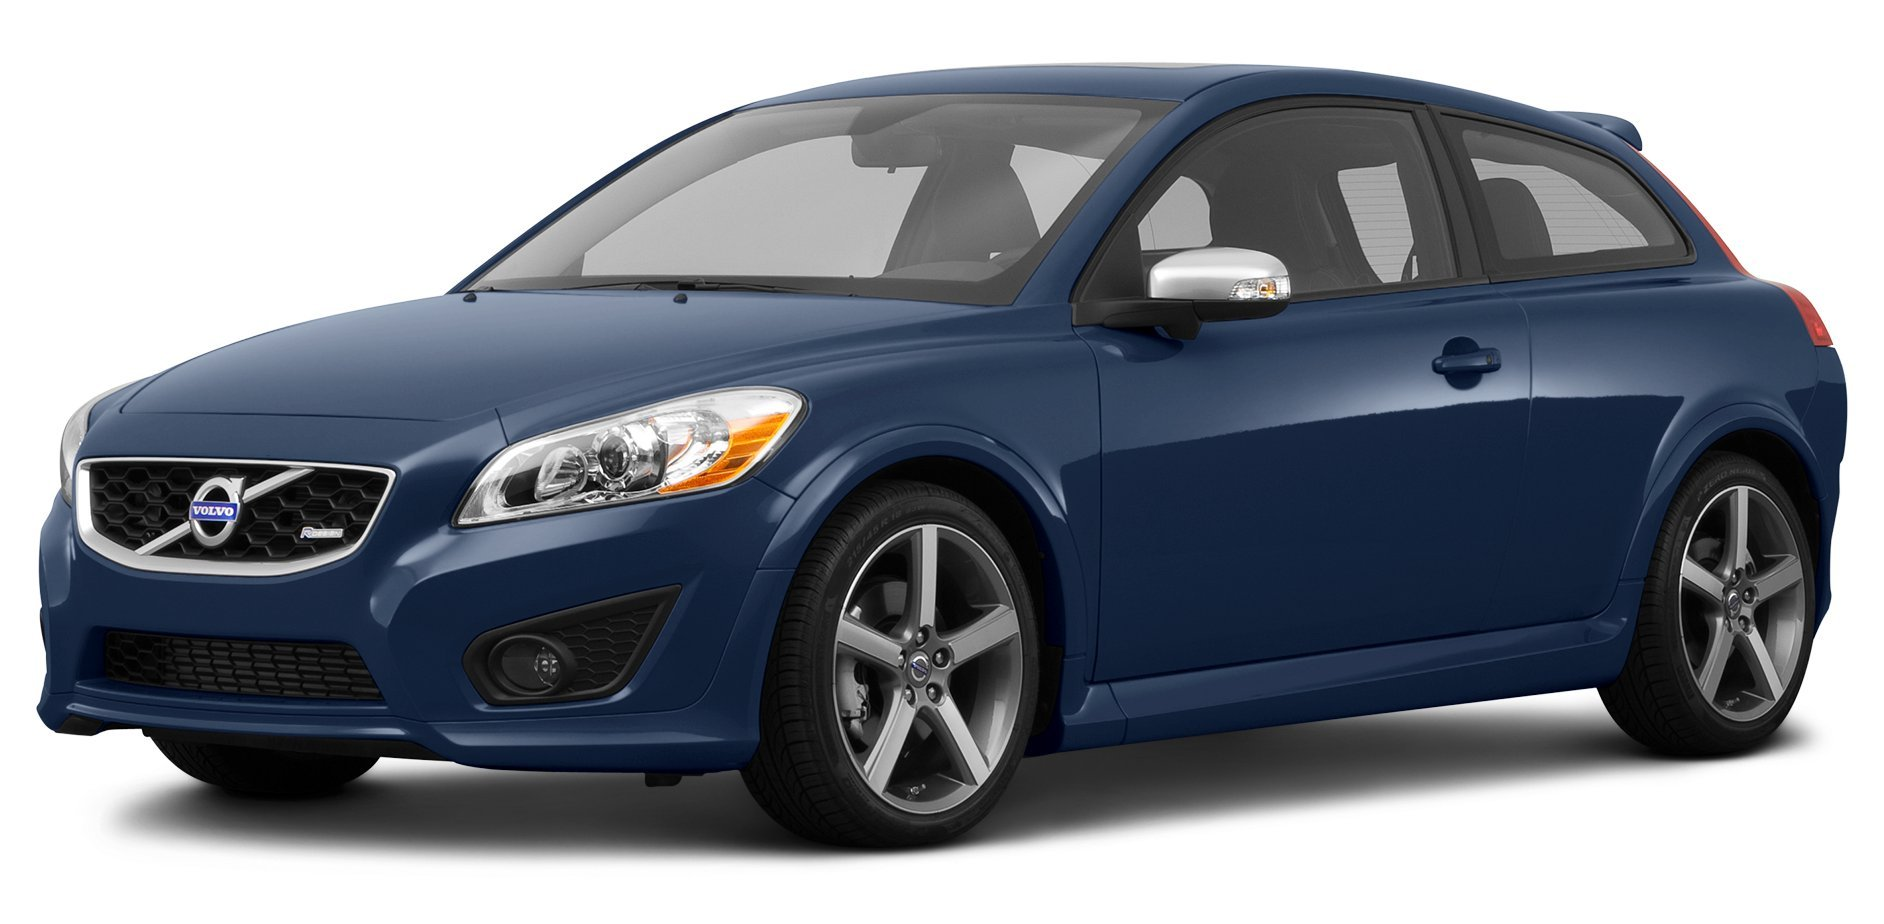 2011 volvo c30 reviews images and specs vehicles. Black Bedroom Furniture Sets. Home Design Ideas